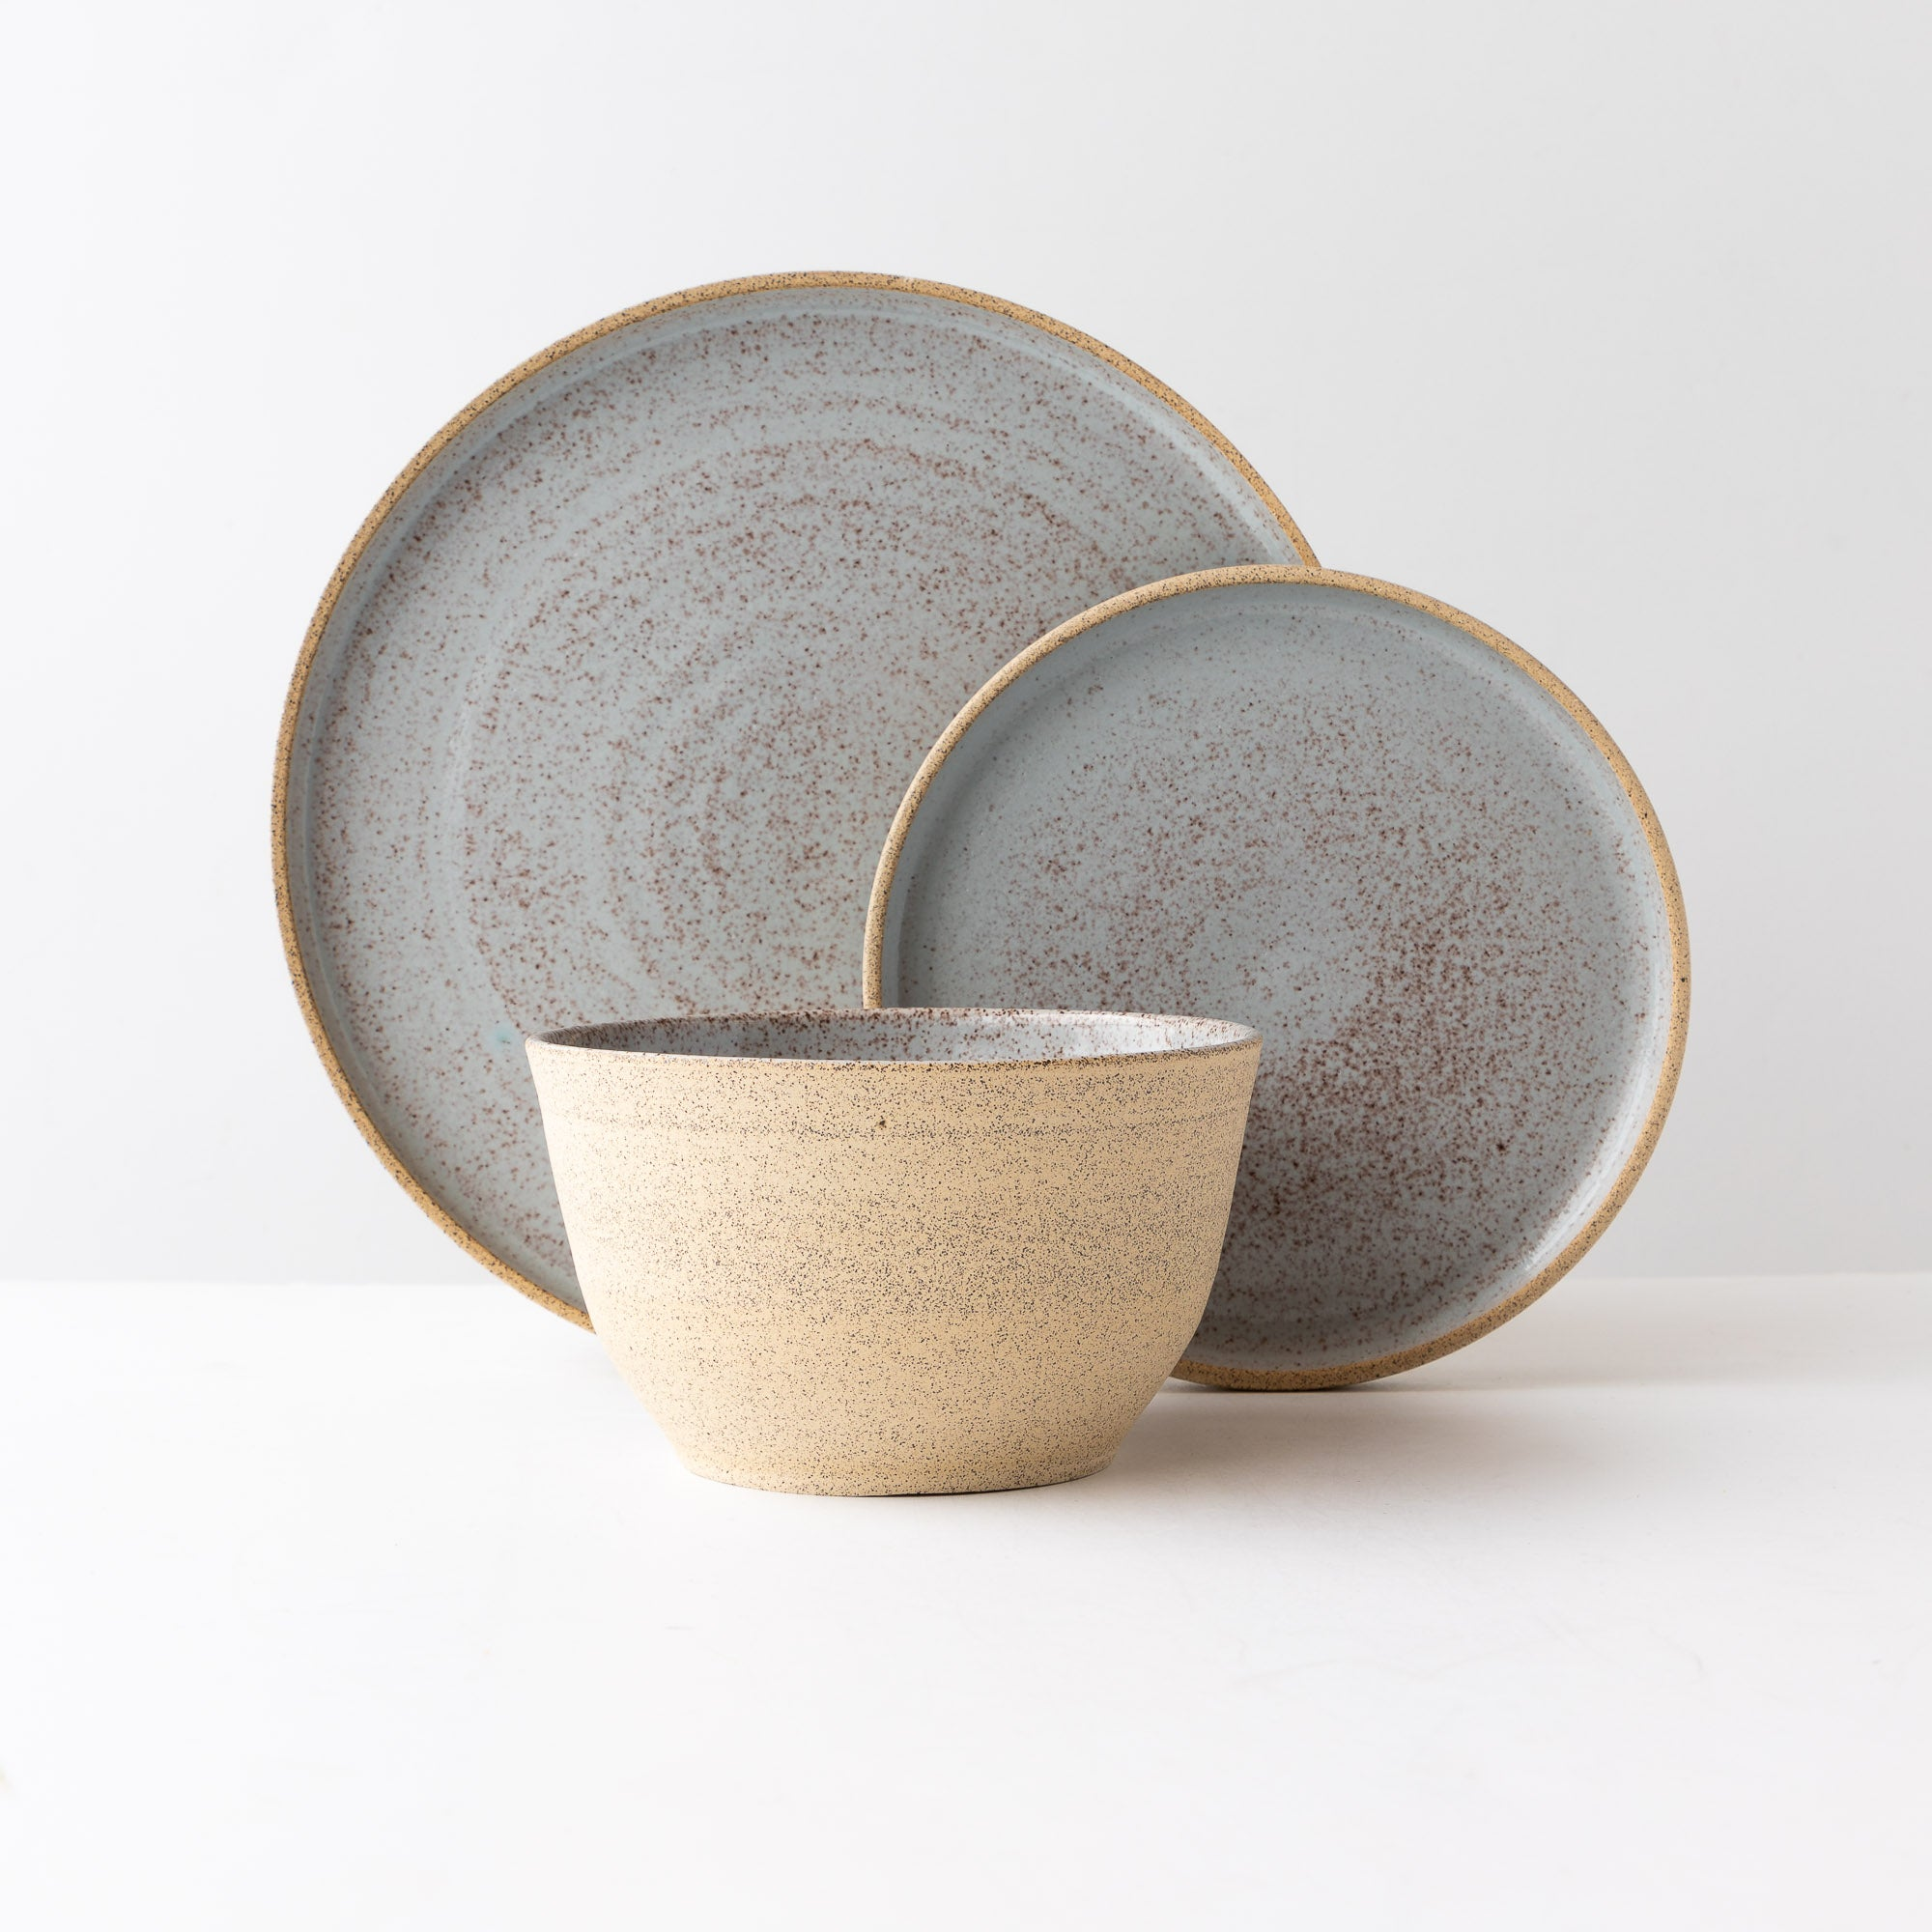 Handmade 3-Piece Dinnerware Set in Speckled Stoneware - Sold by Chic & Basta